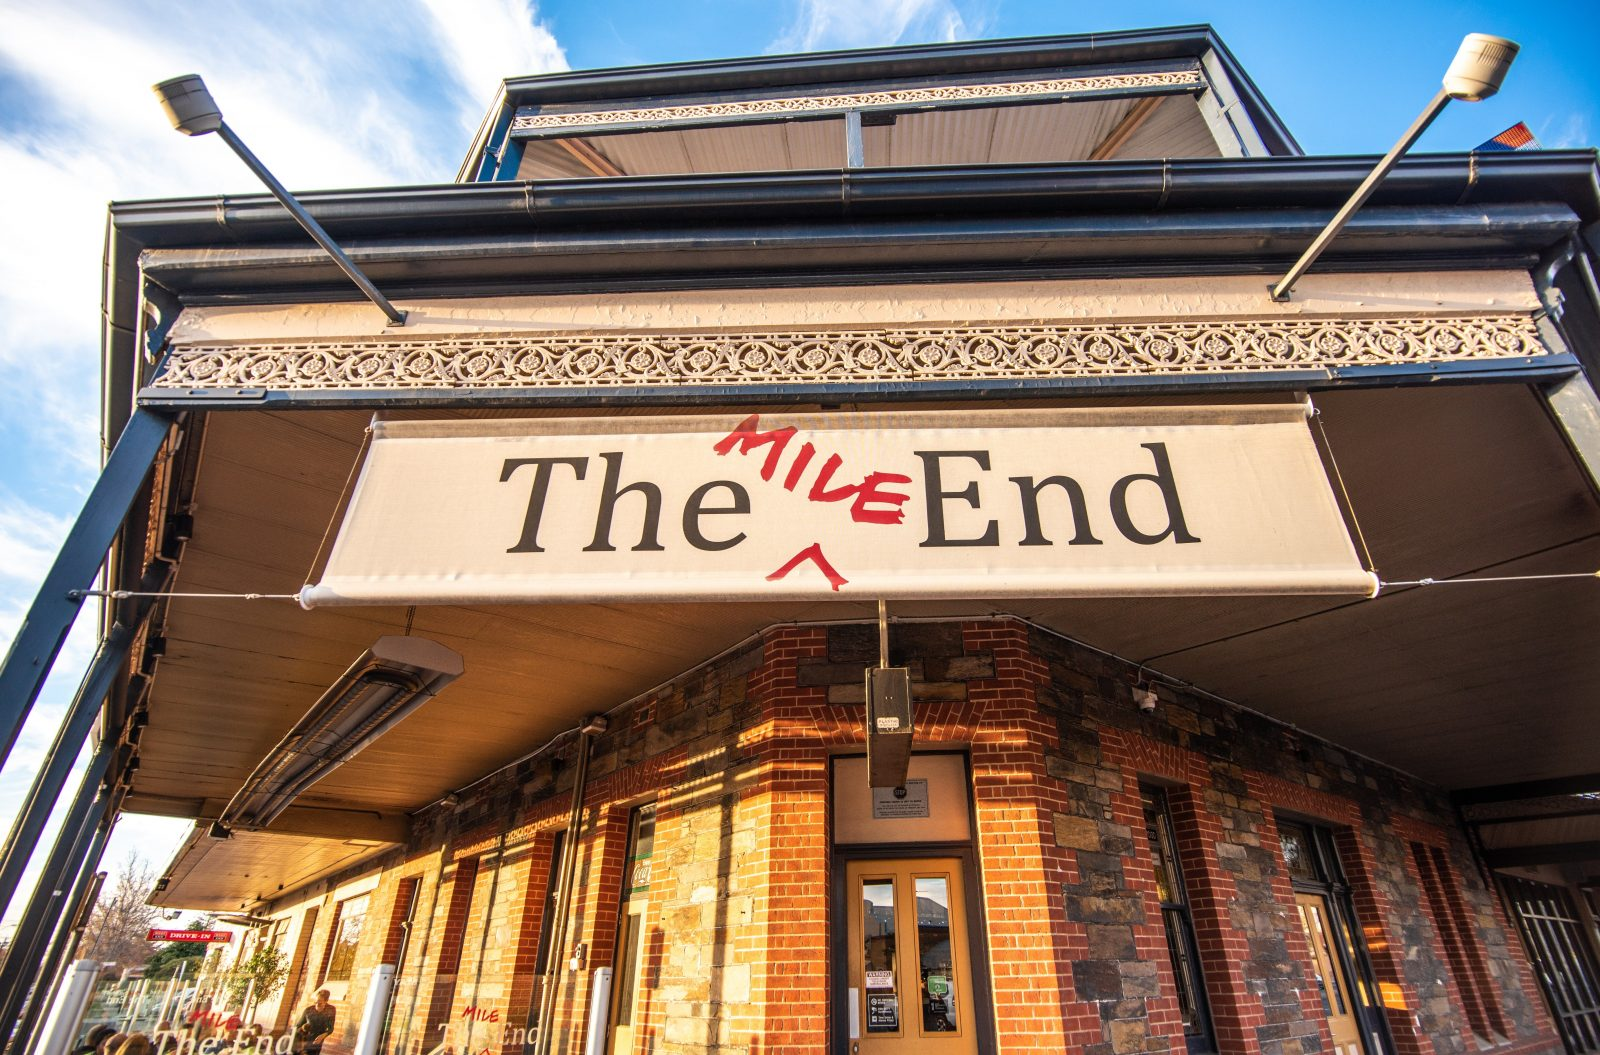 The Mile End